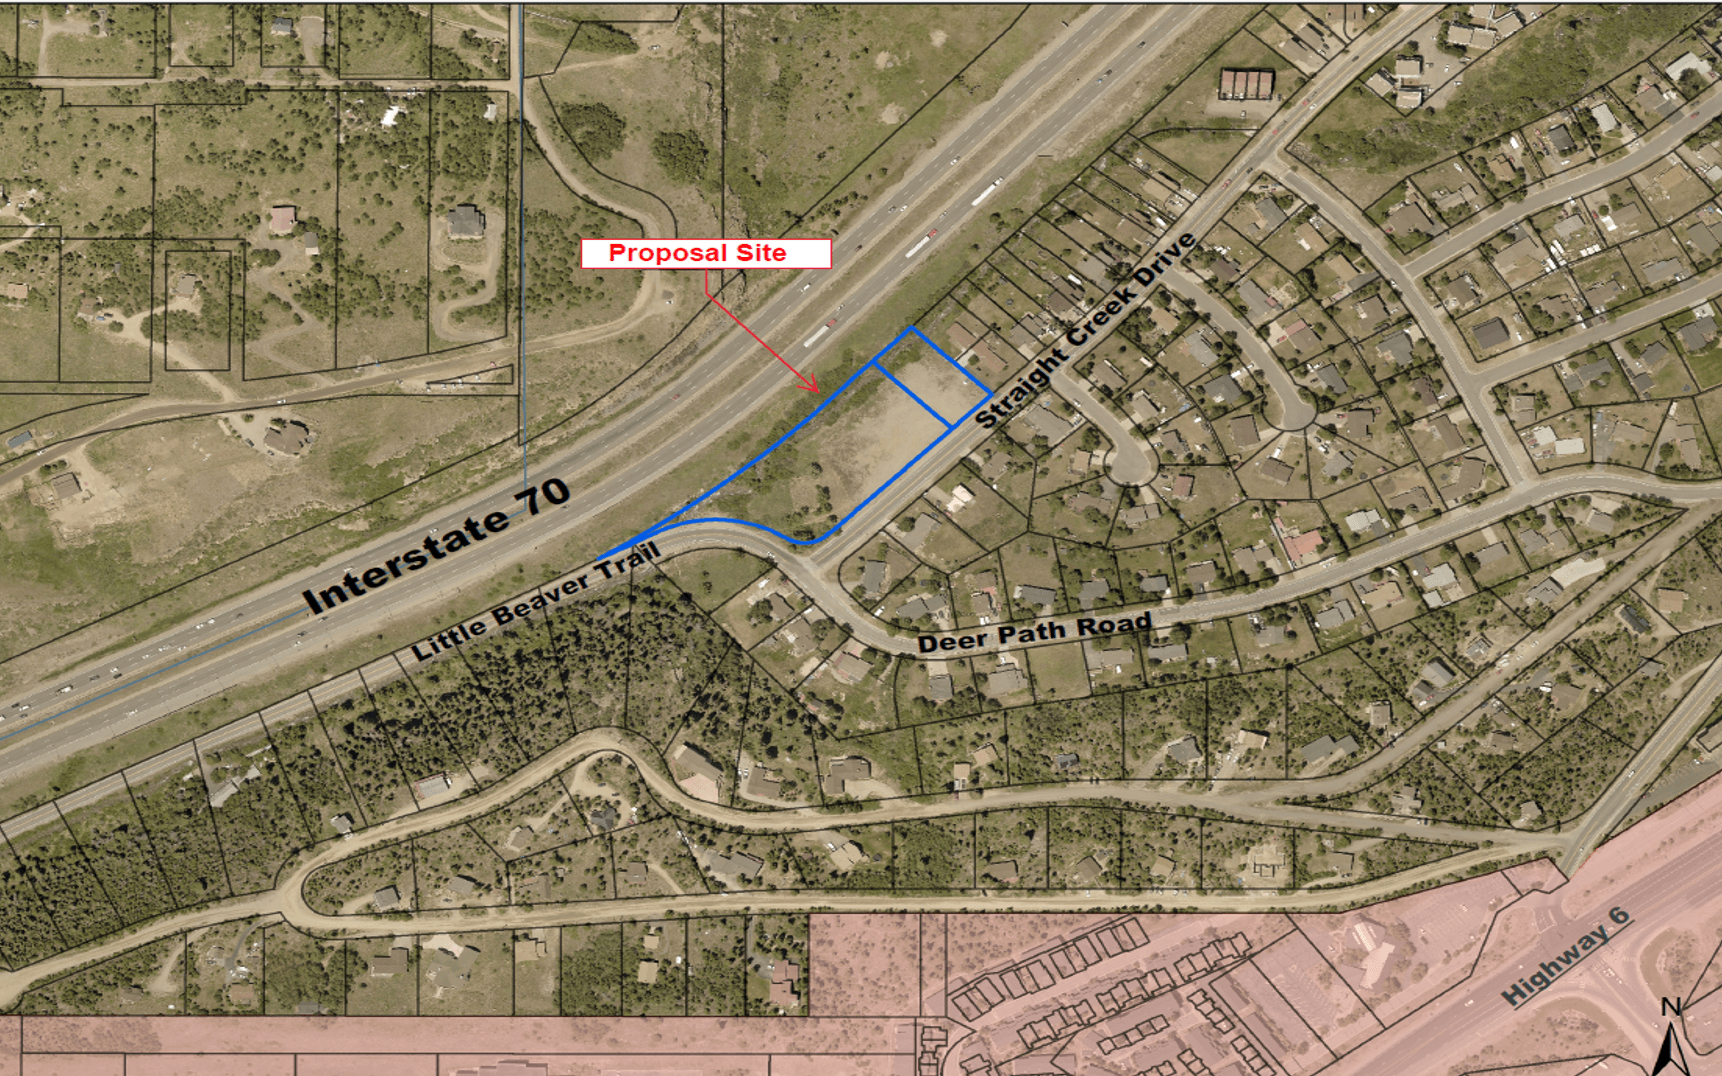 The site is located at the intersection of Deer Path Road and Straight Creek Drive.